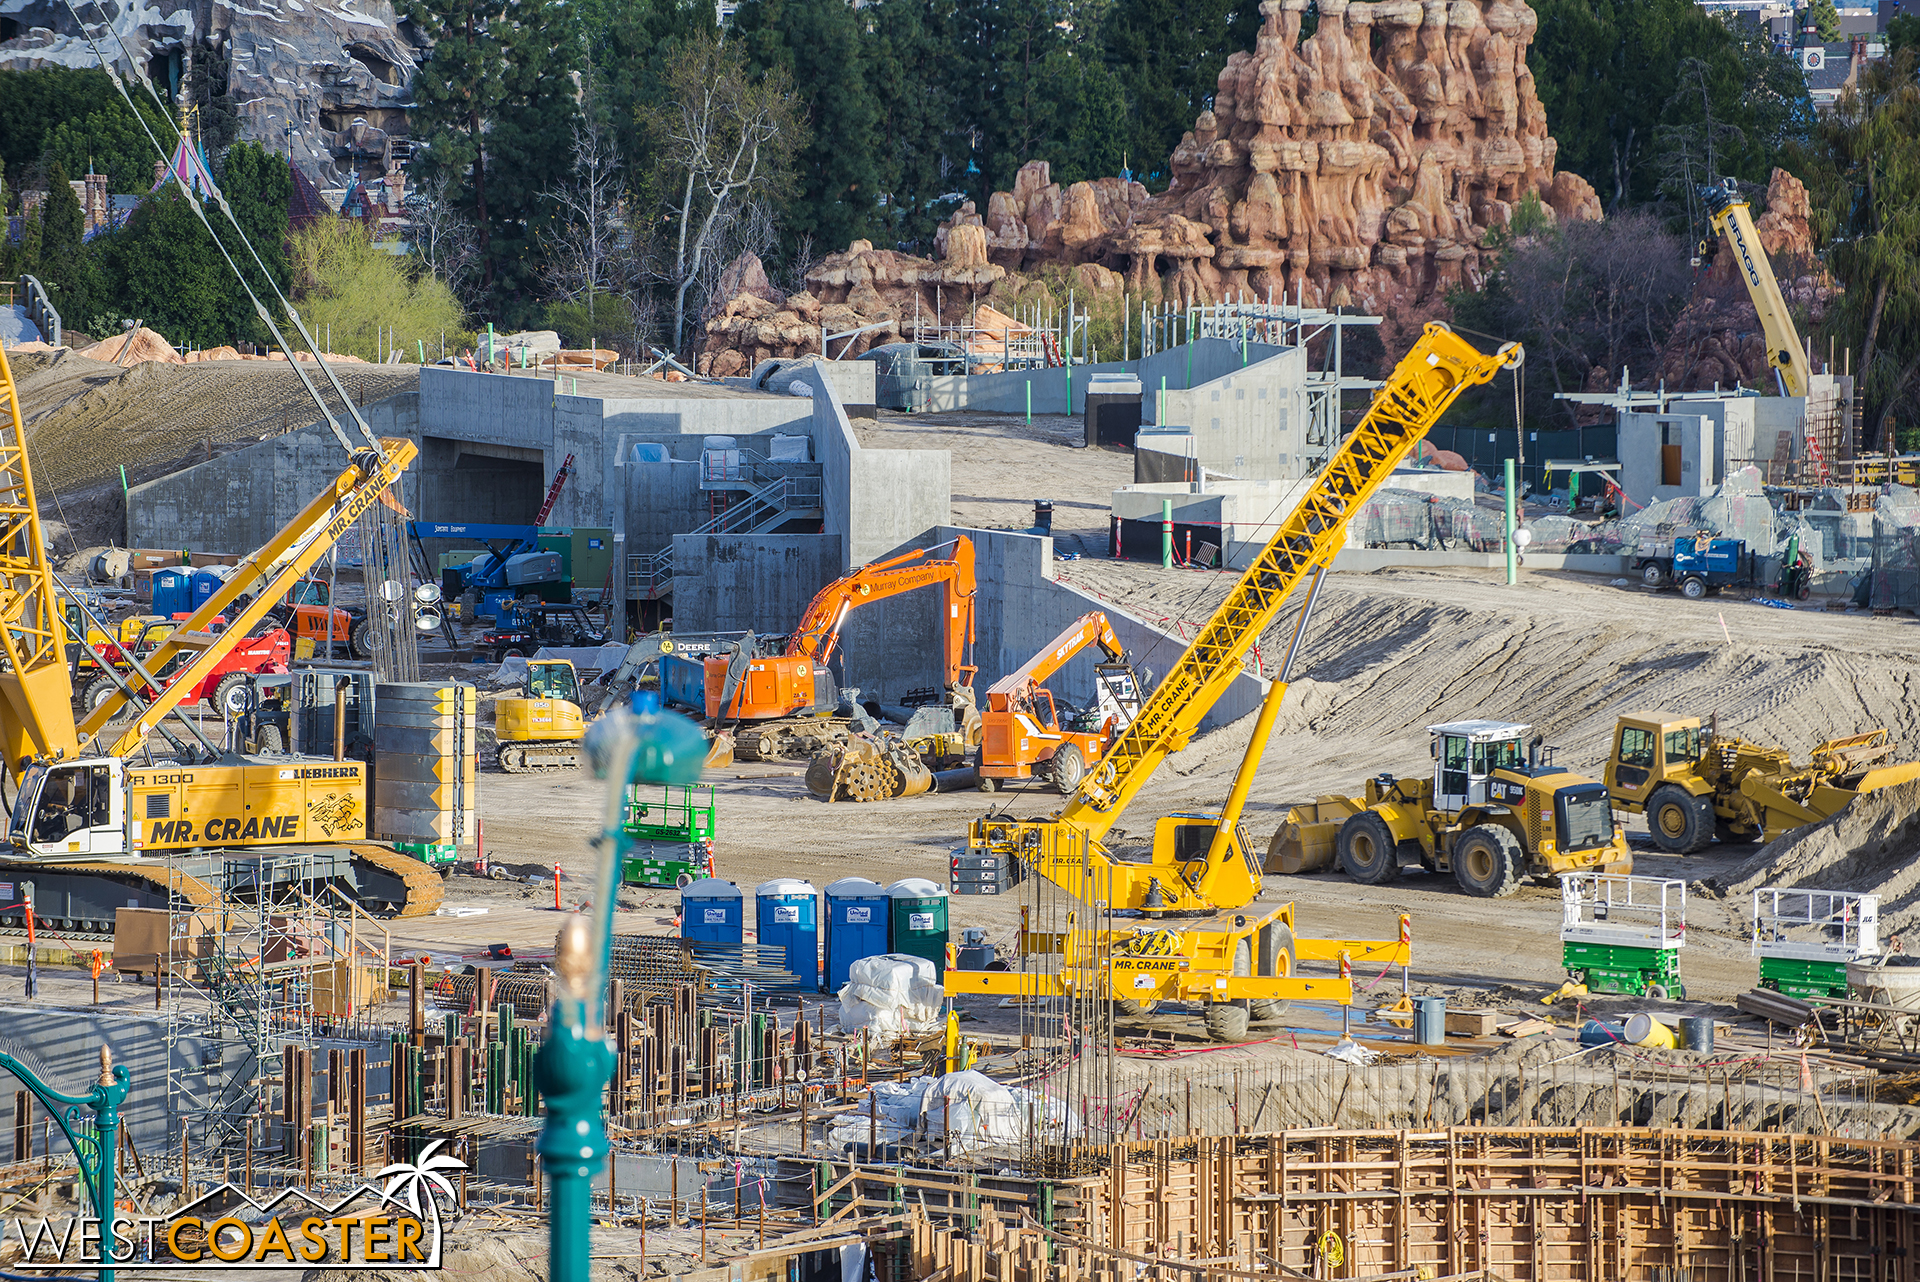 """It's going to be pretty nice.  And now we come upon one of the entrances into """"Star Wars"""" Land, plus the service road that will go over the tunnel entrance to link Fantasyland backstage to this area."""